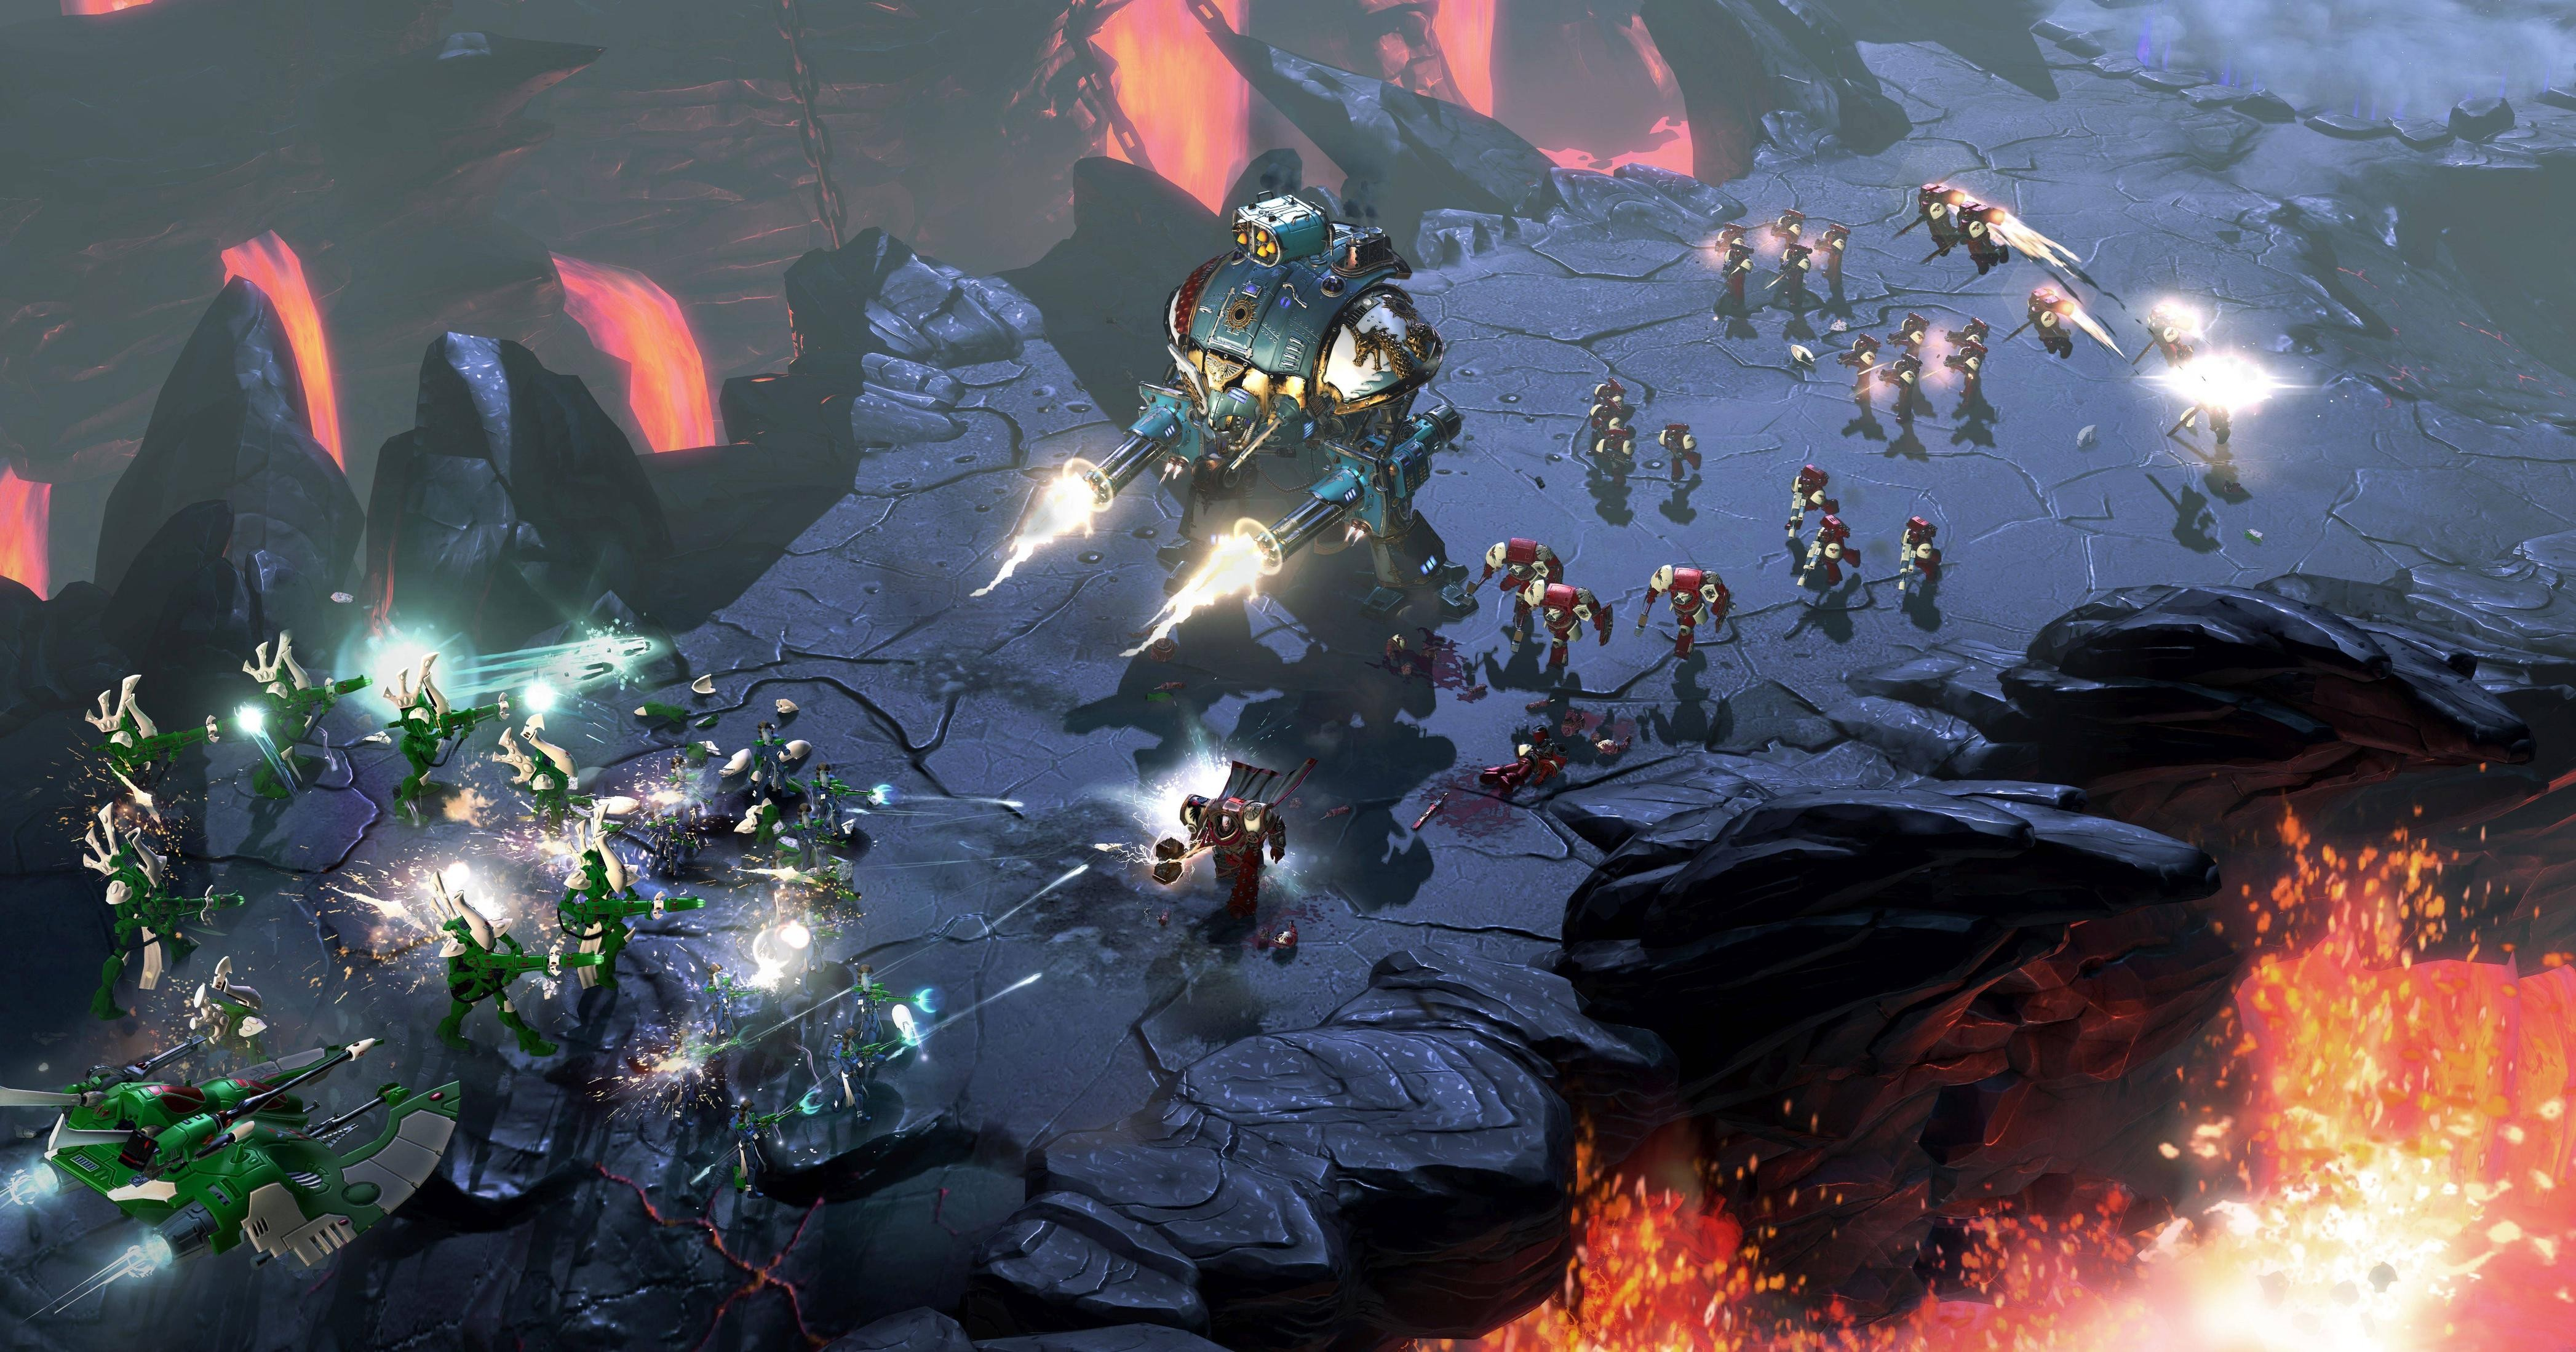 wallpaper warhammer 40k  dawn of war 3  best games  games